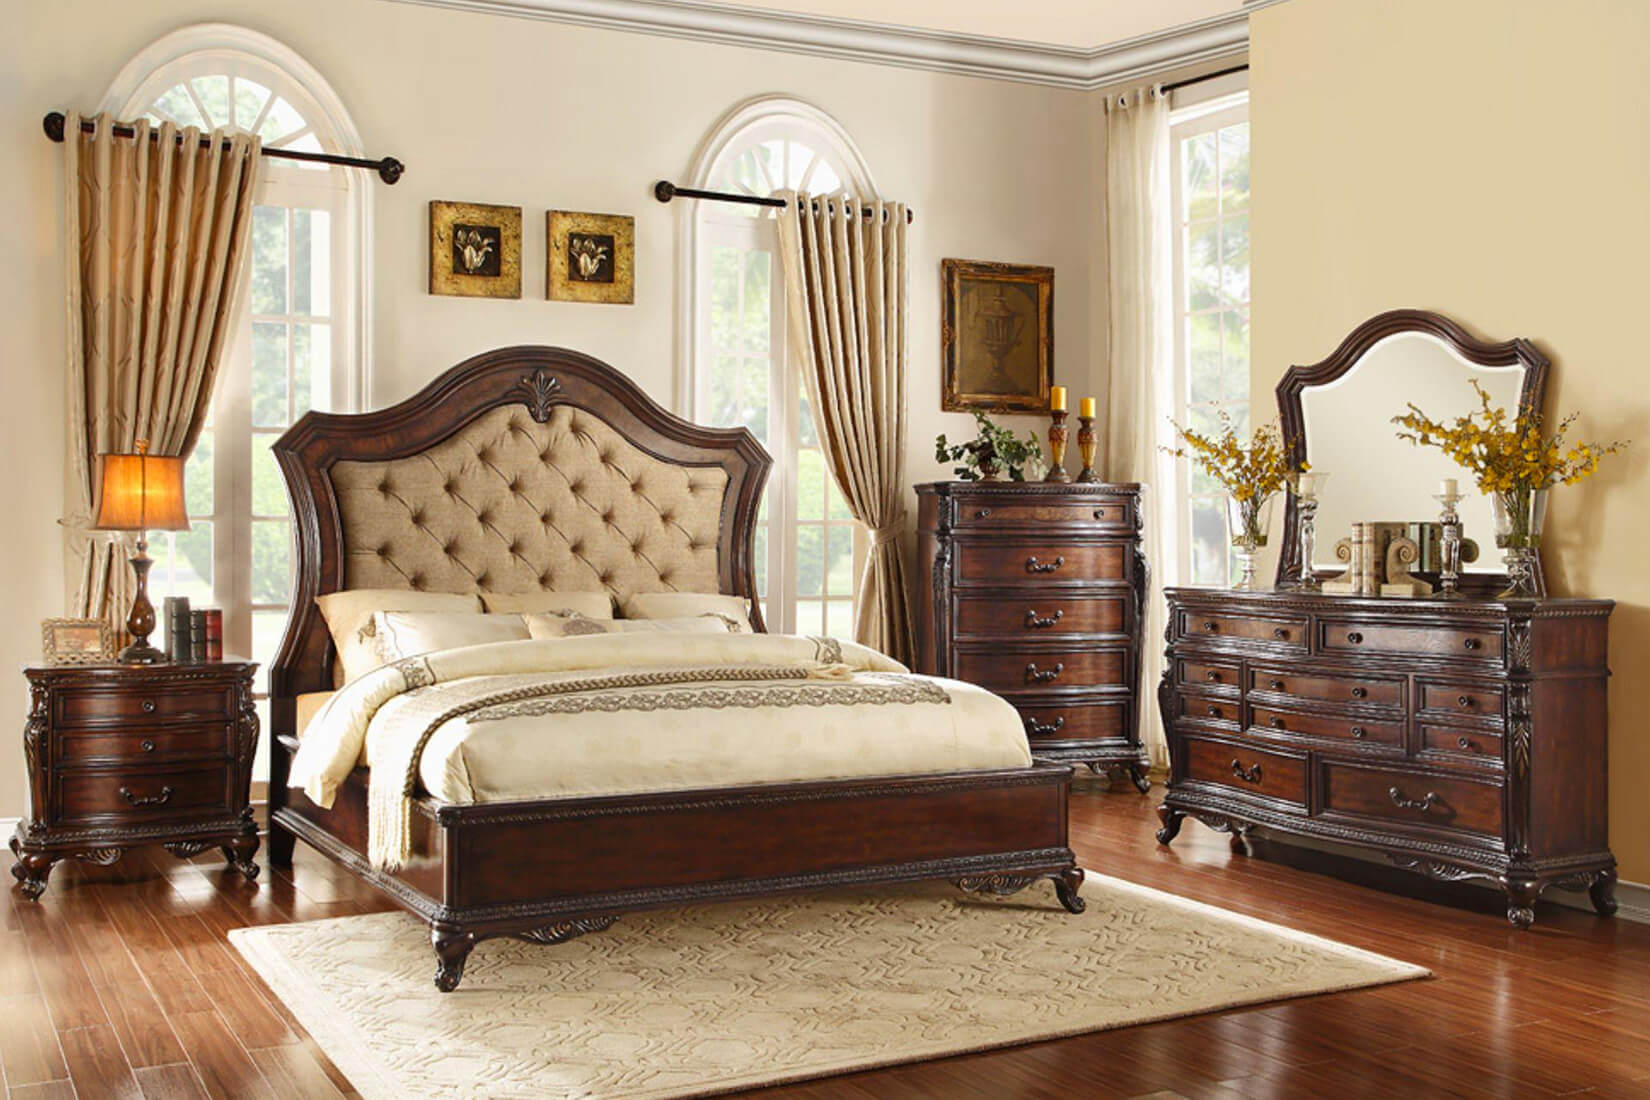 bedroom-furniture_1.jpg